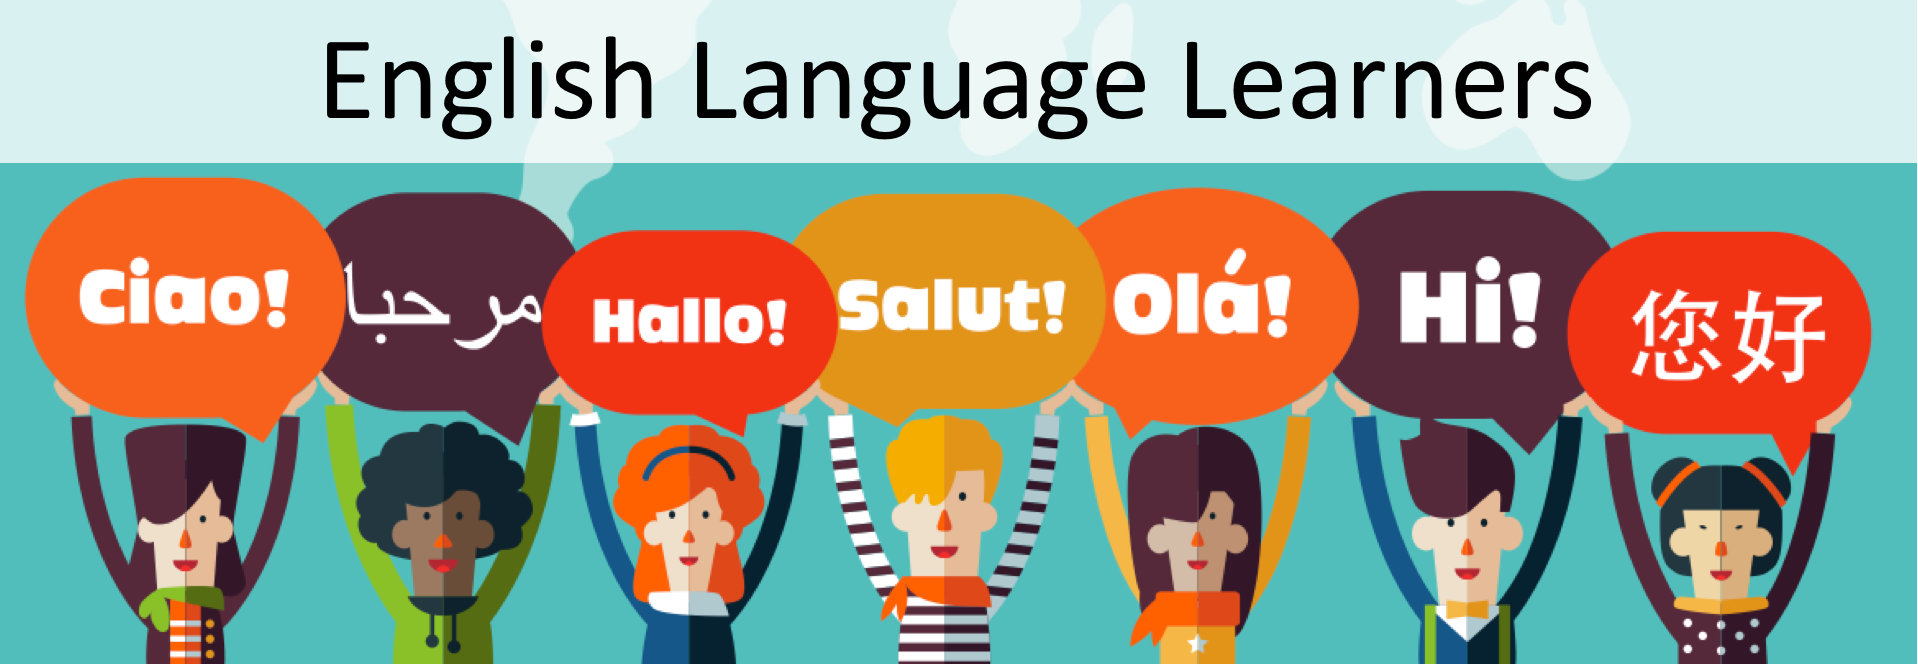 English Language Learners Banner